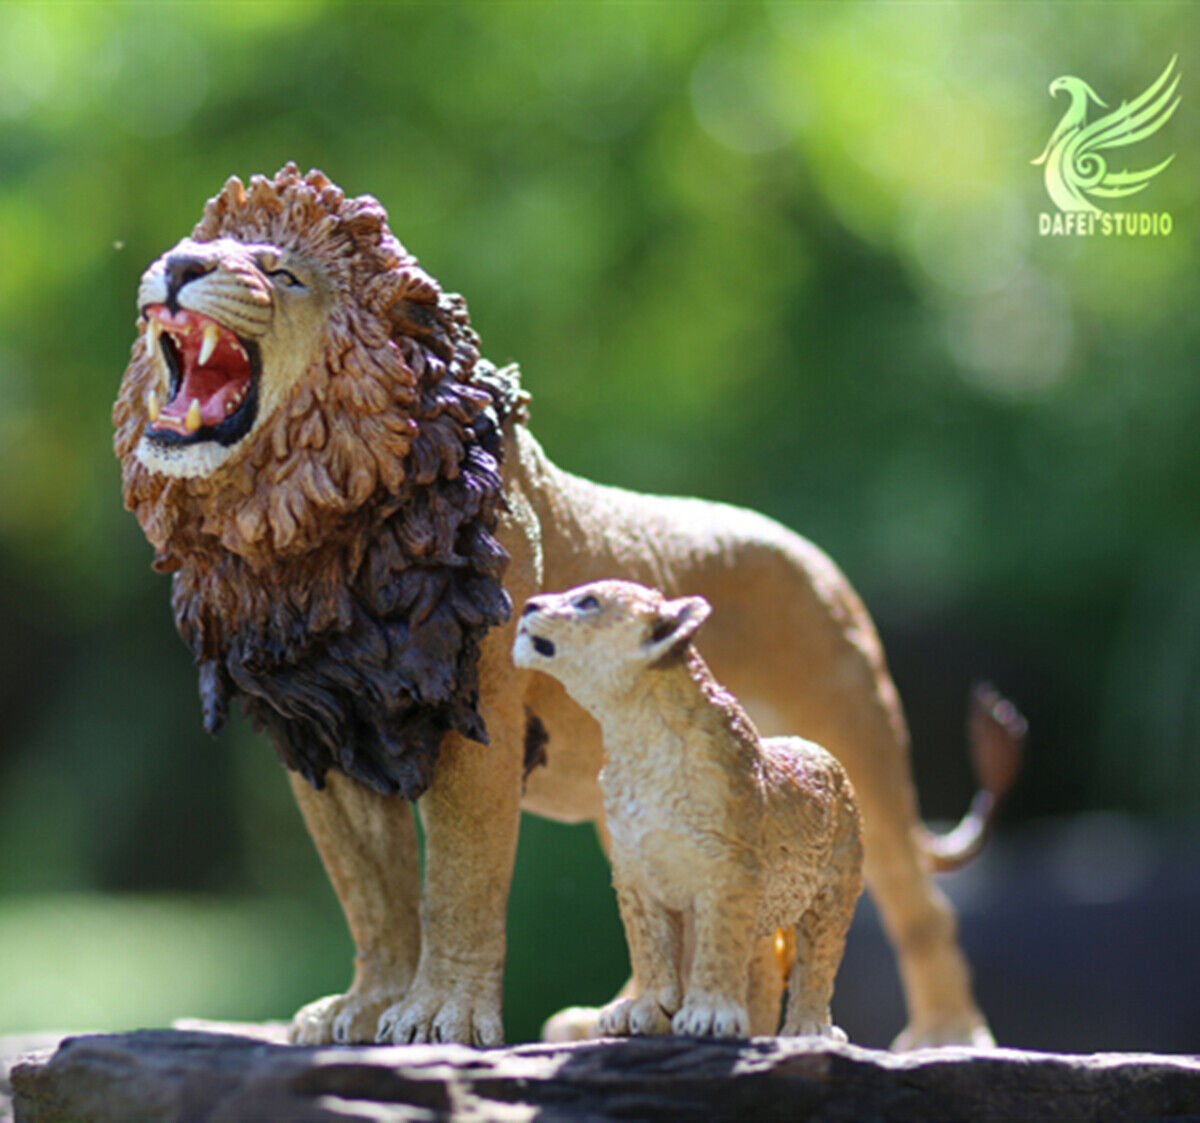 DF 1 12 African Lion King and Son Model Panthera leo massaicus Animal Toy Gift